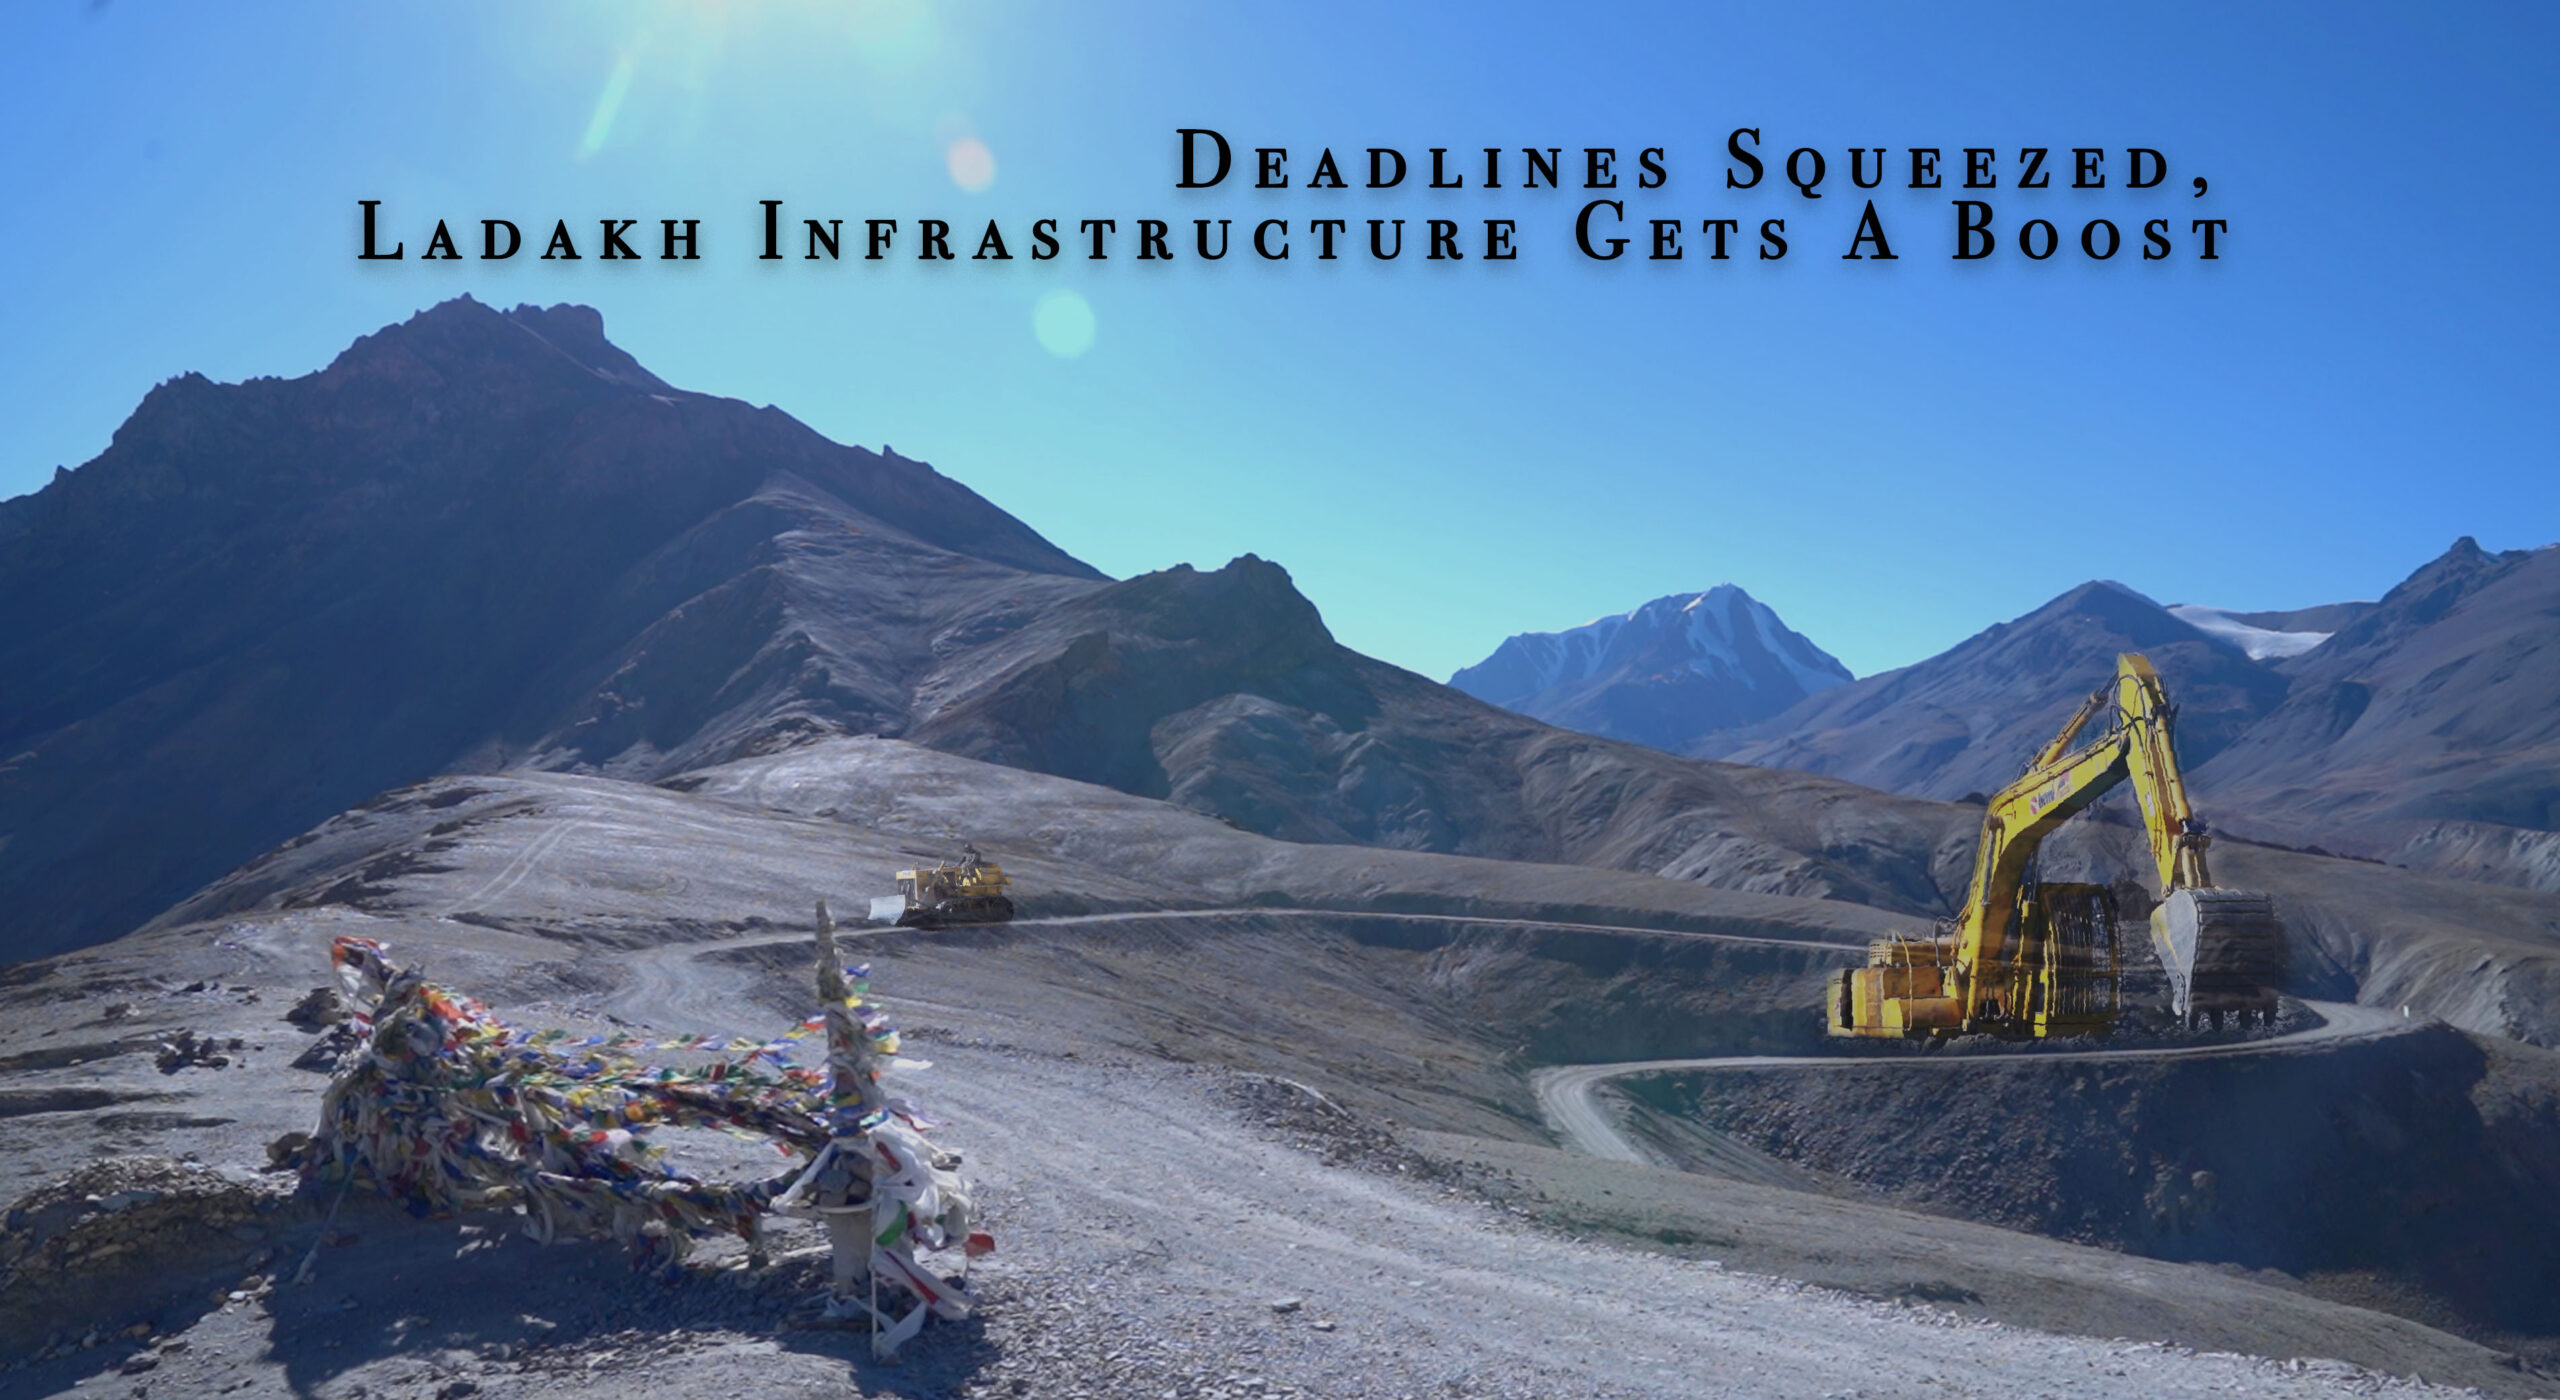 Deadlines Squeezed, Ladakh Infrastructure Gets A Boost